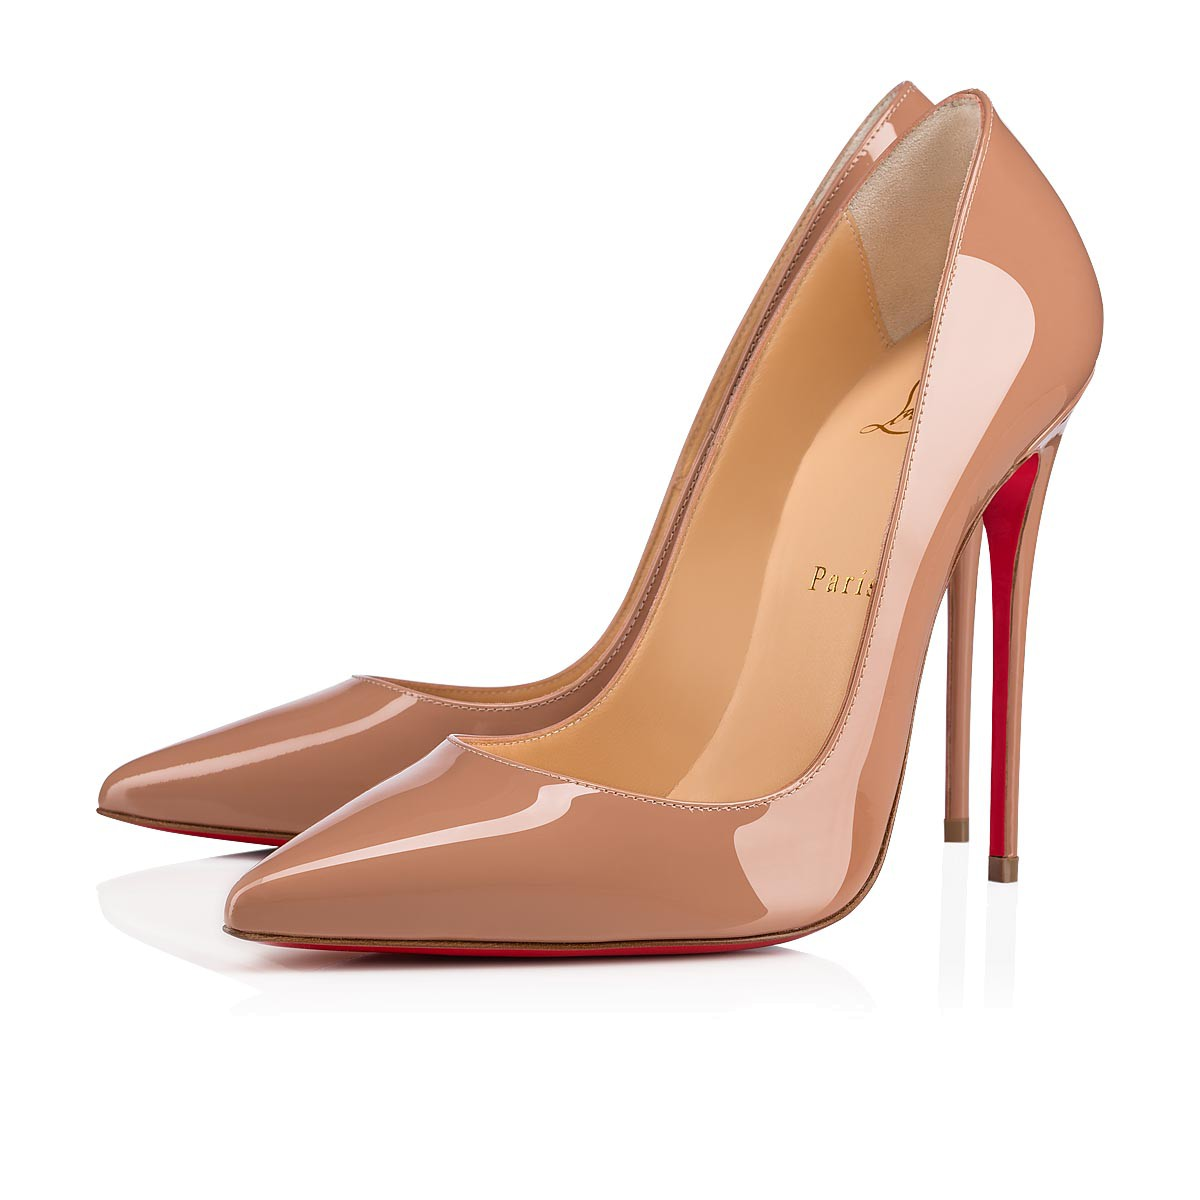 7ca1987cb7d7 So Kate 120 Nude Patent Leather - Women Shoes - Christian Louboutin